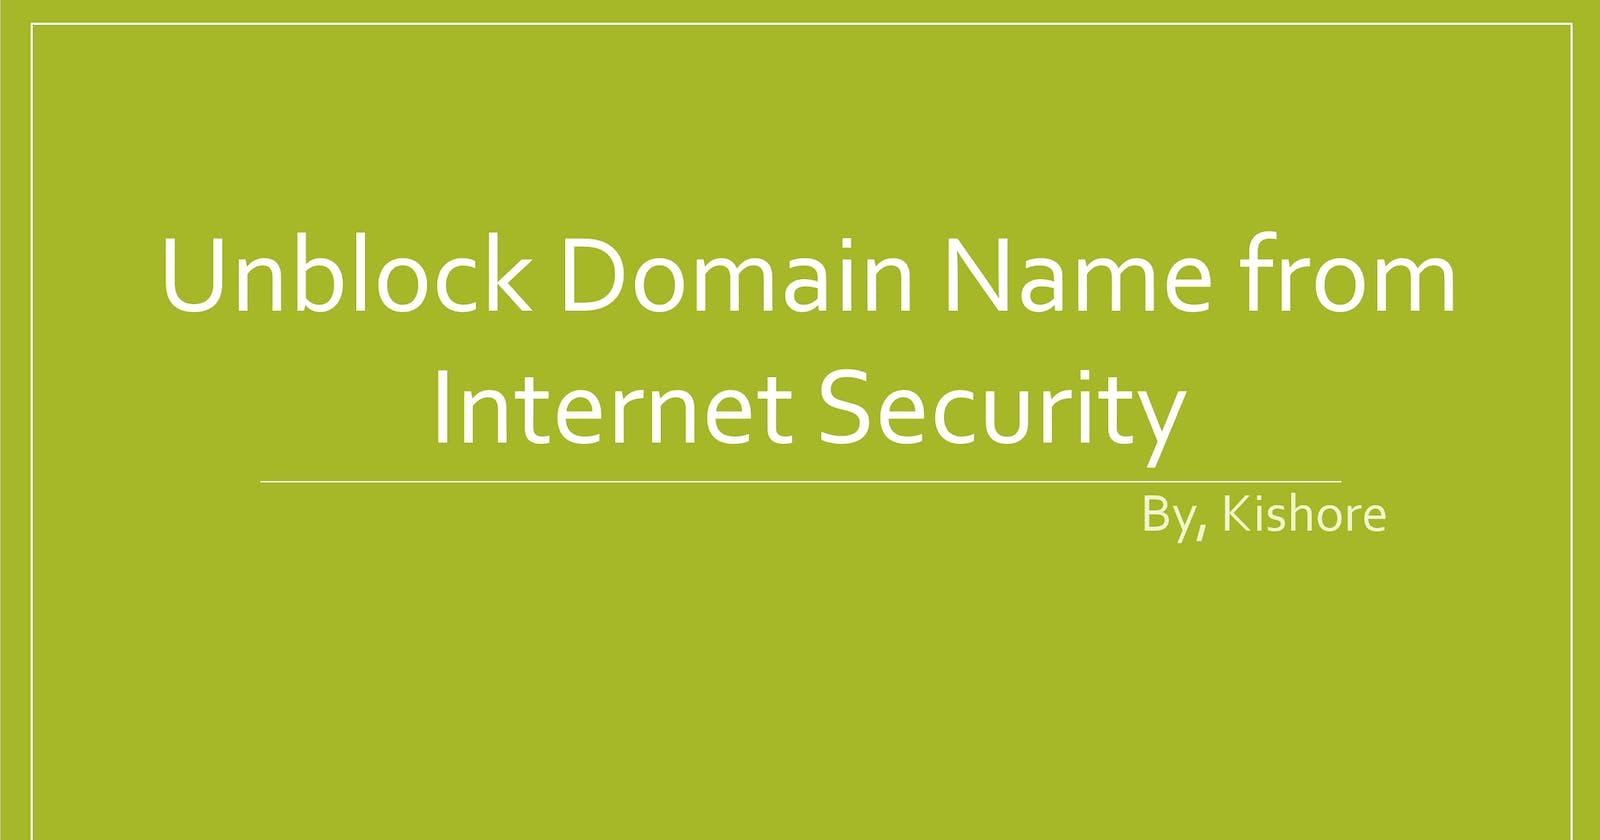 Unblock domain name from Internet Security